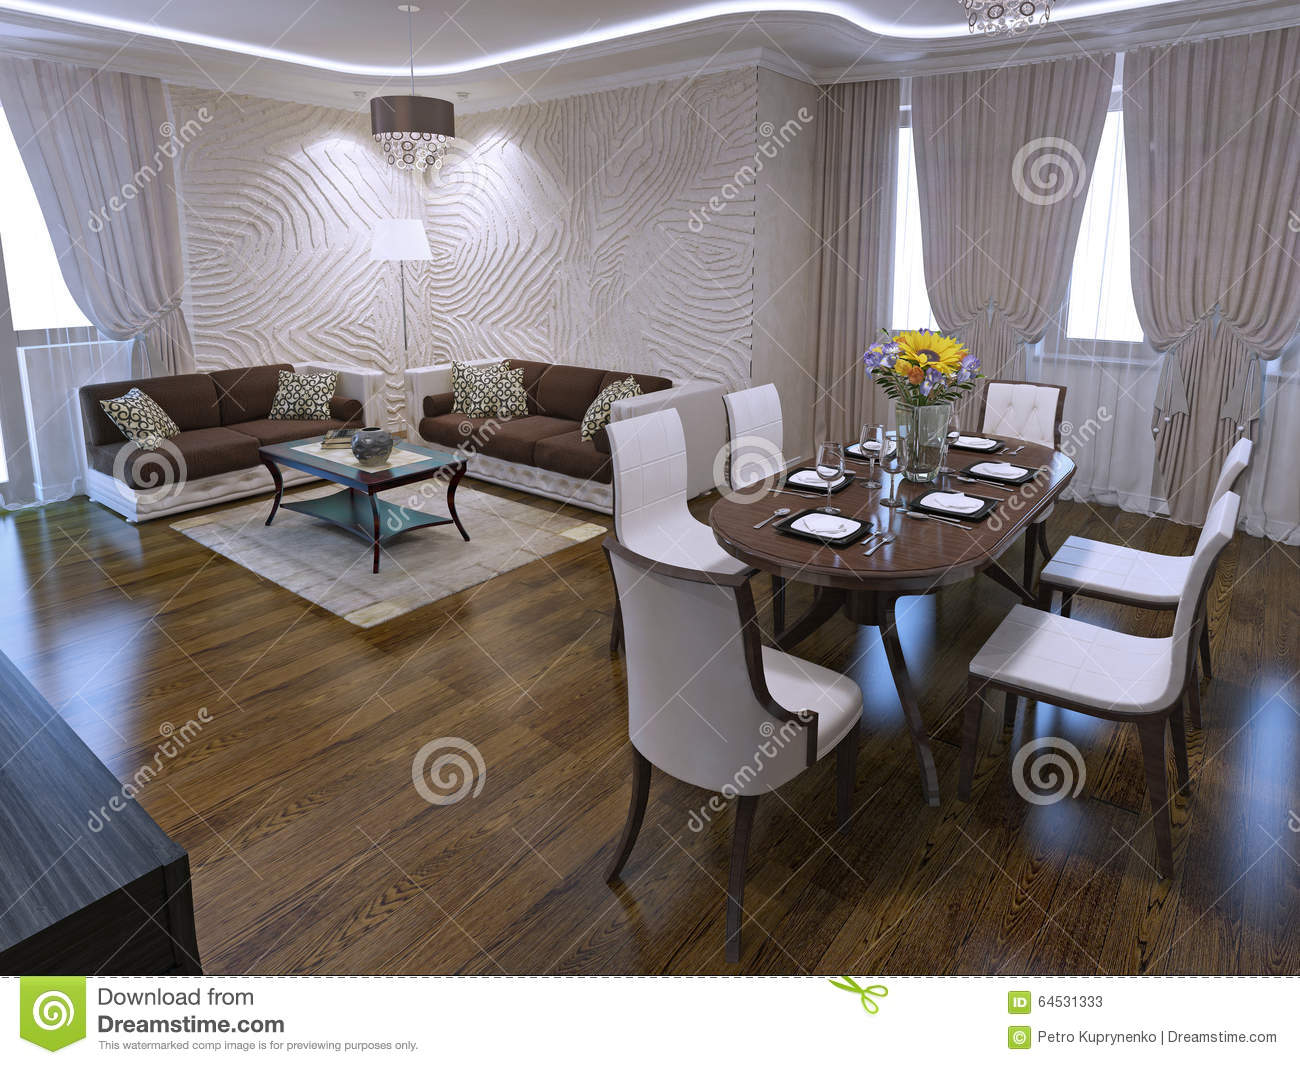 Lounge With Dining Table In Art Deco Design Stock Image - Image of ...